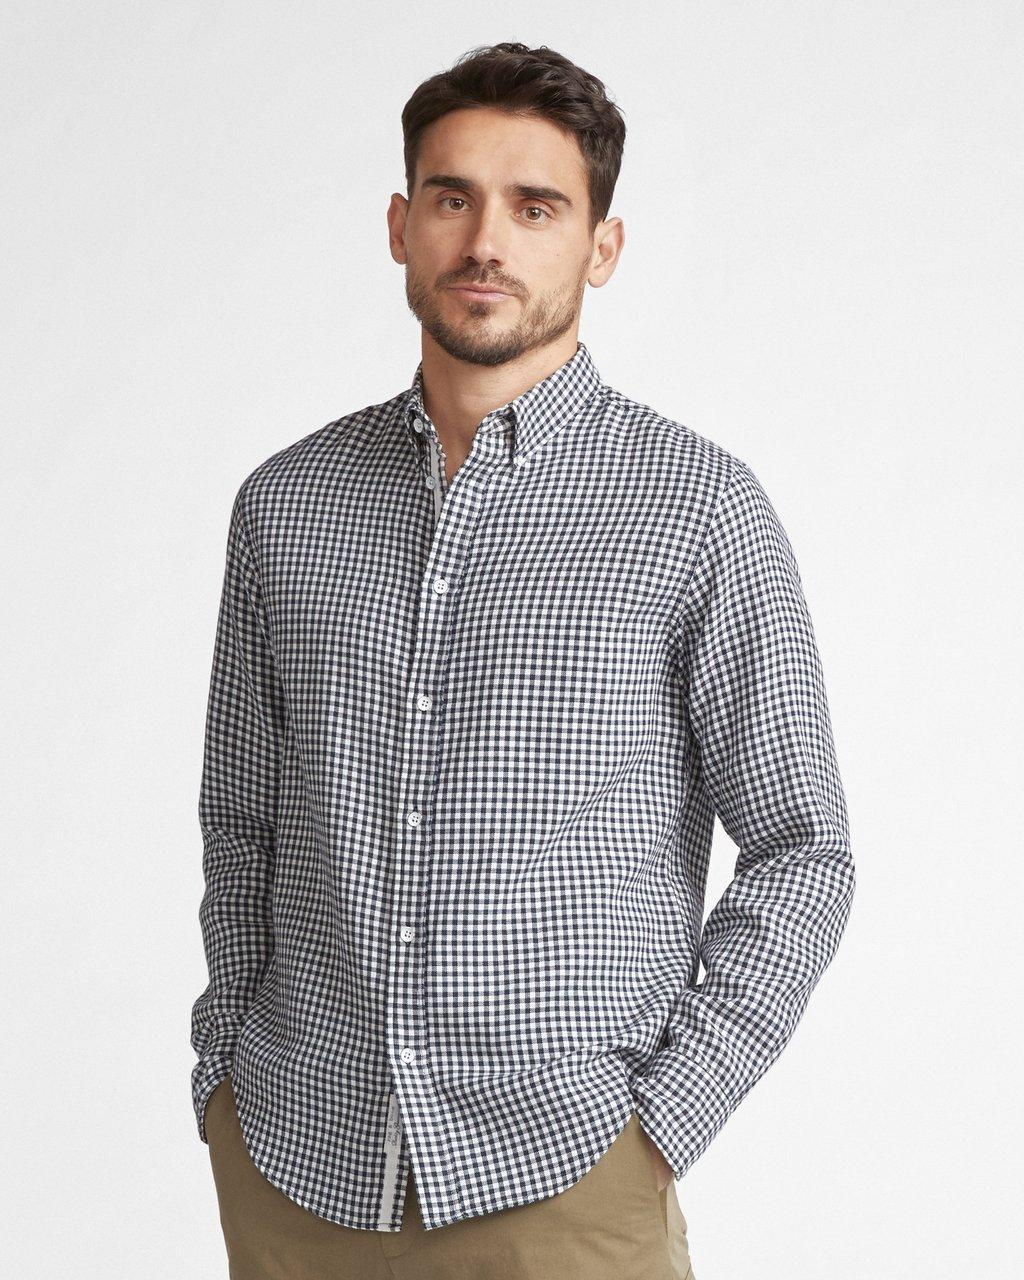 Fit 2 Tomlin Shirt - Gingham